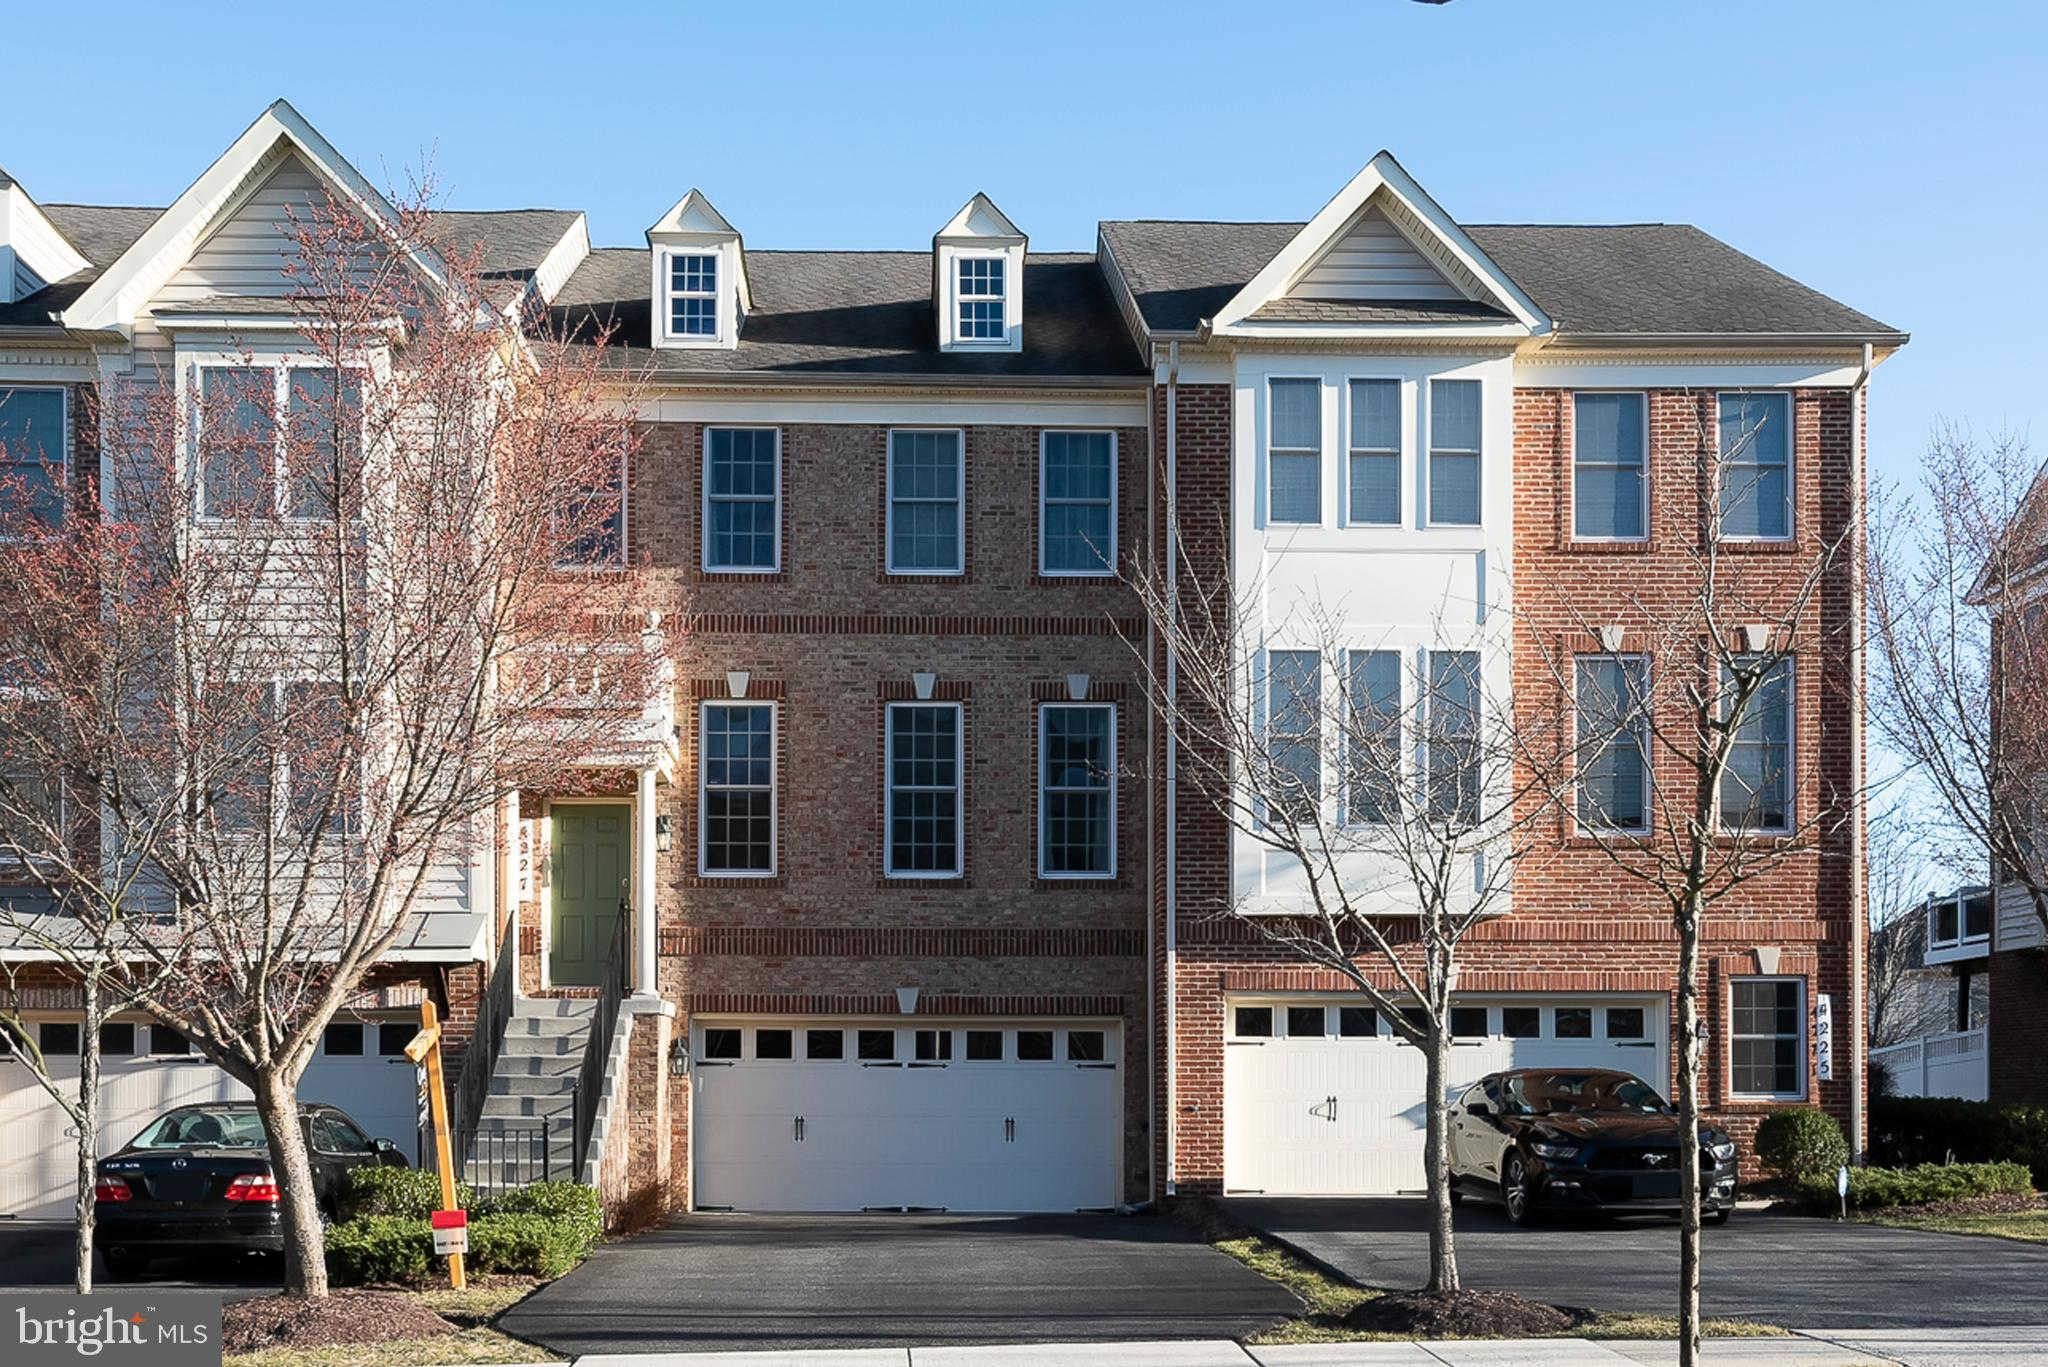 4227 Chariot Way, Upper Marlboro, MD 20772 is now new to the market!